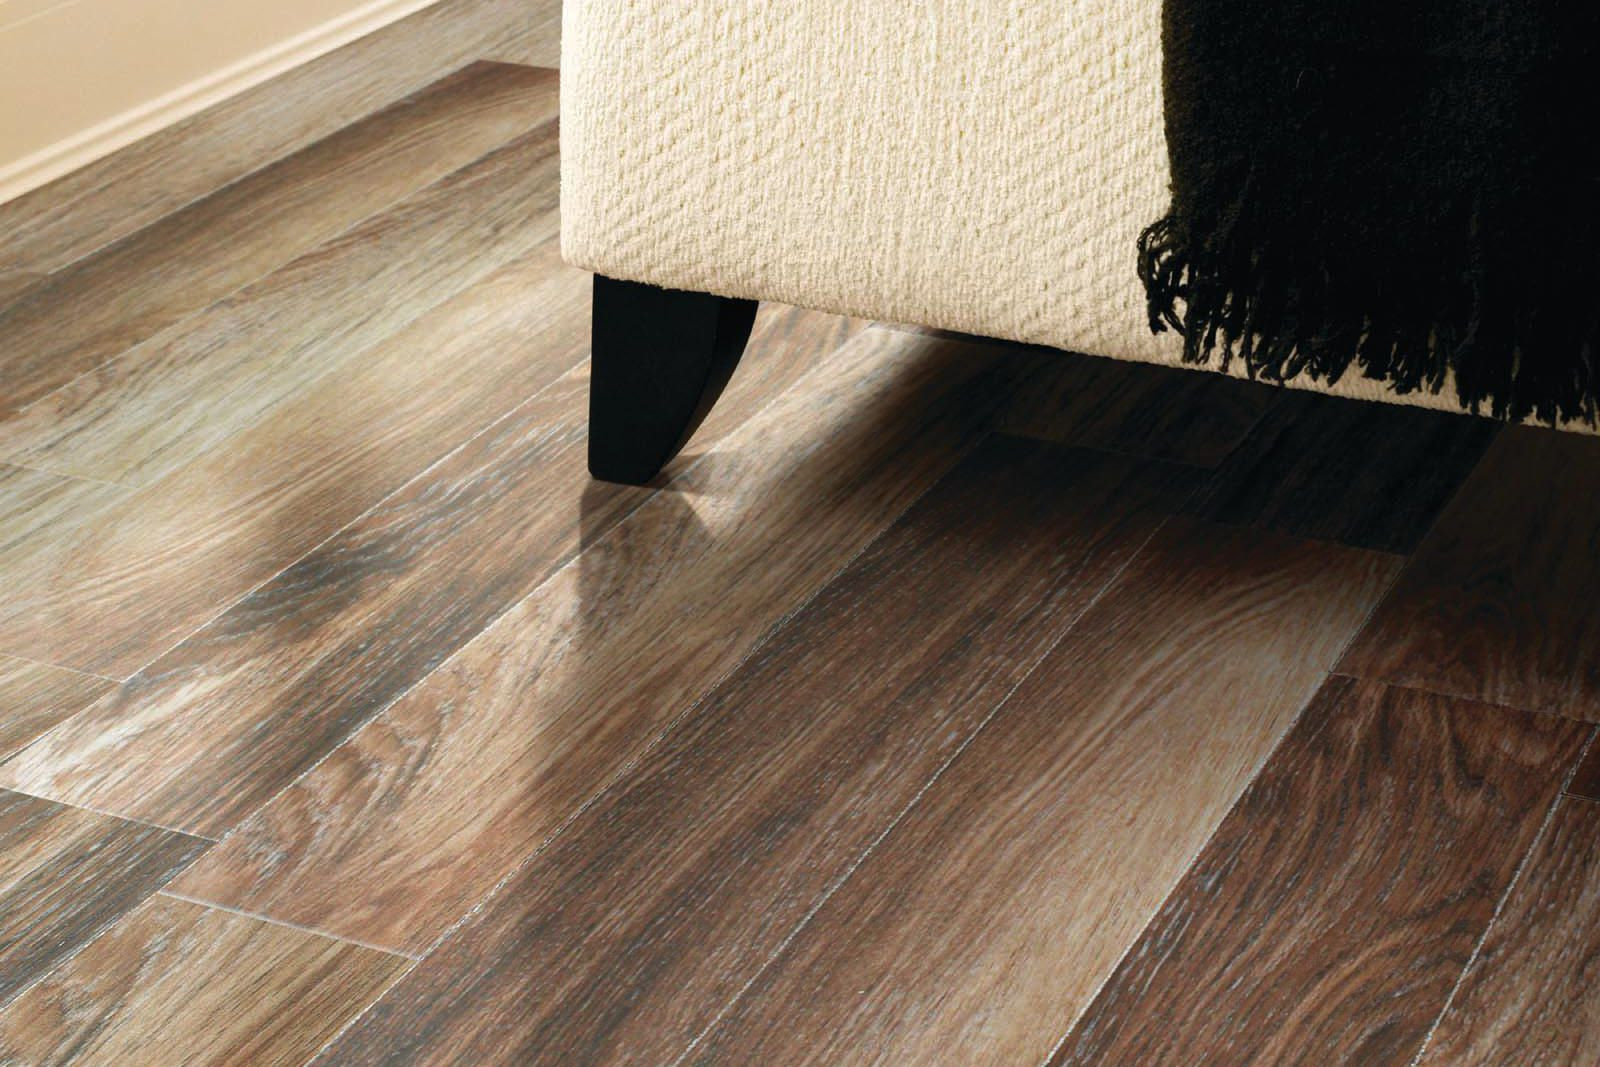 hardwood looking tile flooring of mediterranea the warm look of wood combines with the cool touch of intended for sandal wood porcelain tile in palm by mediterranea usa